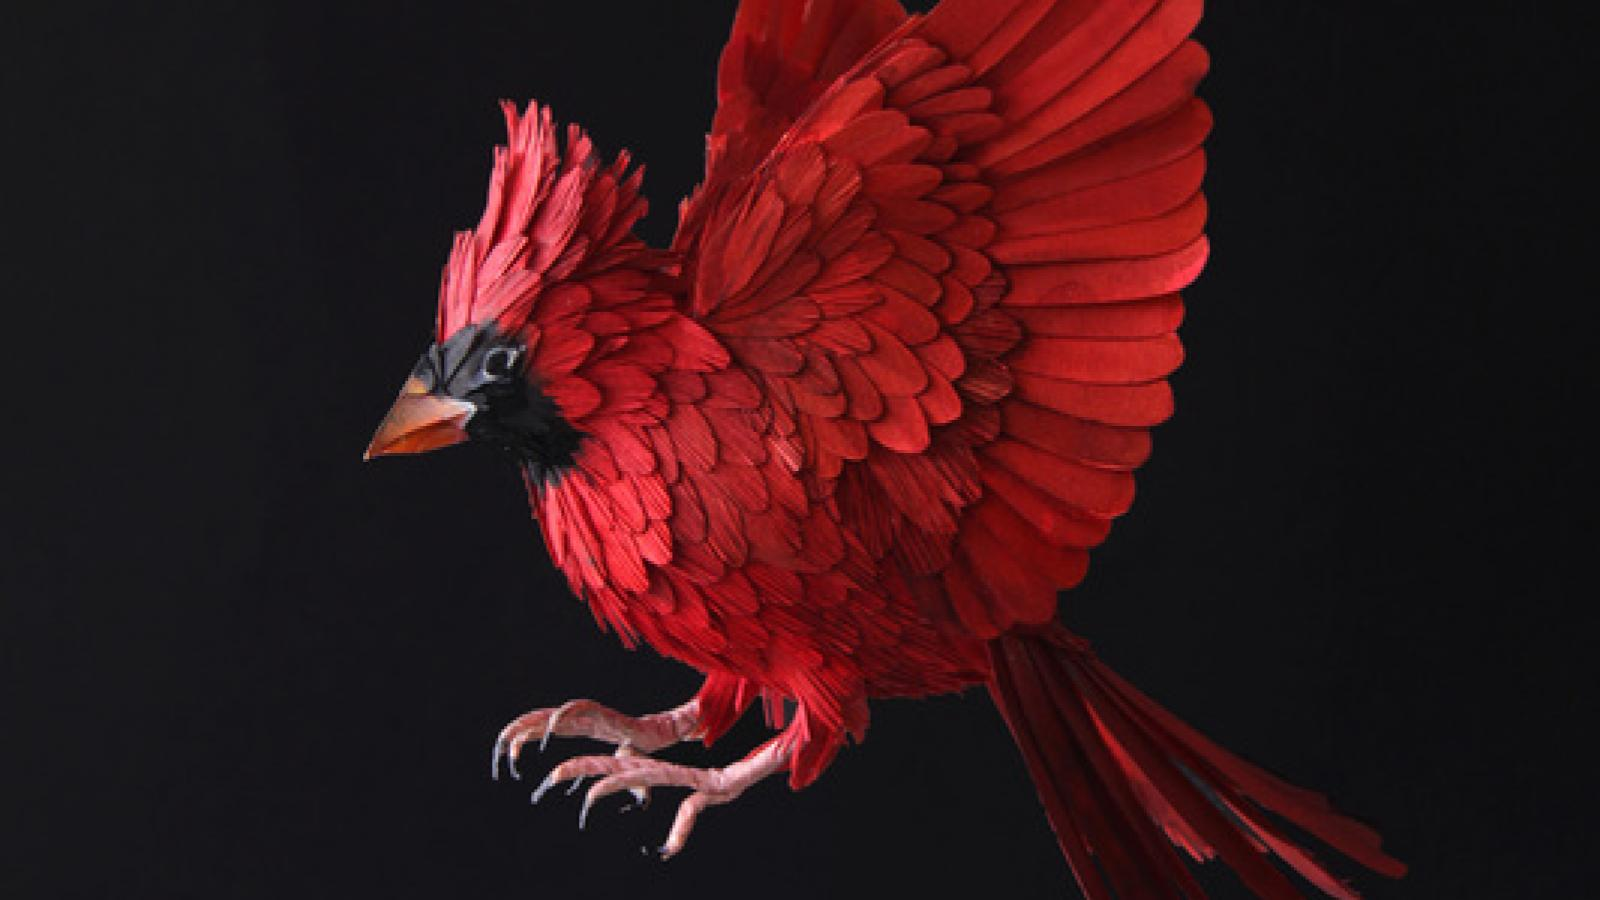 Unbelievable Paper Sculpture Birds by Diana Herrera